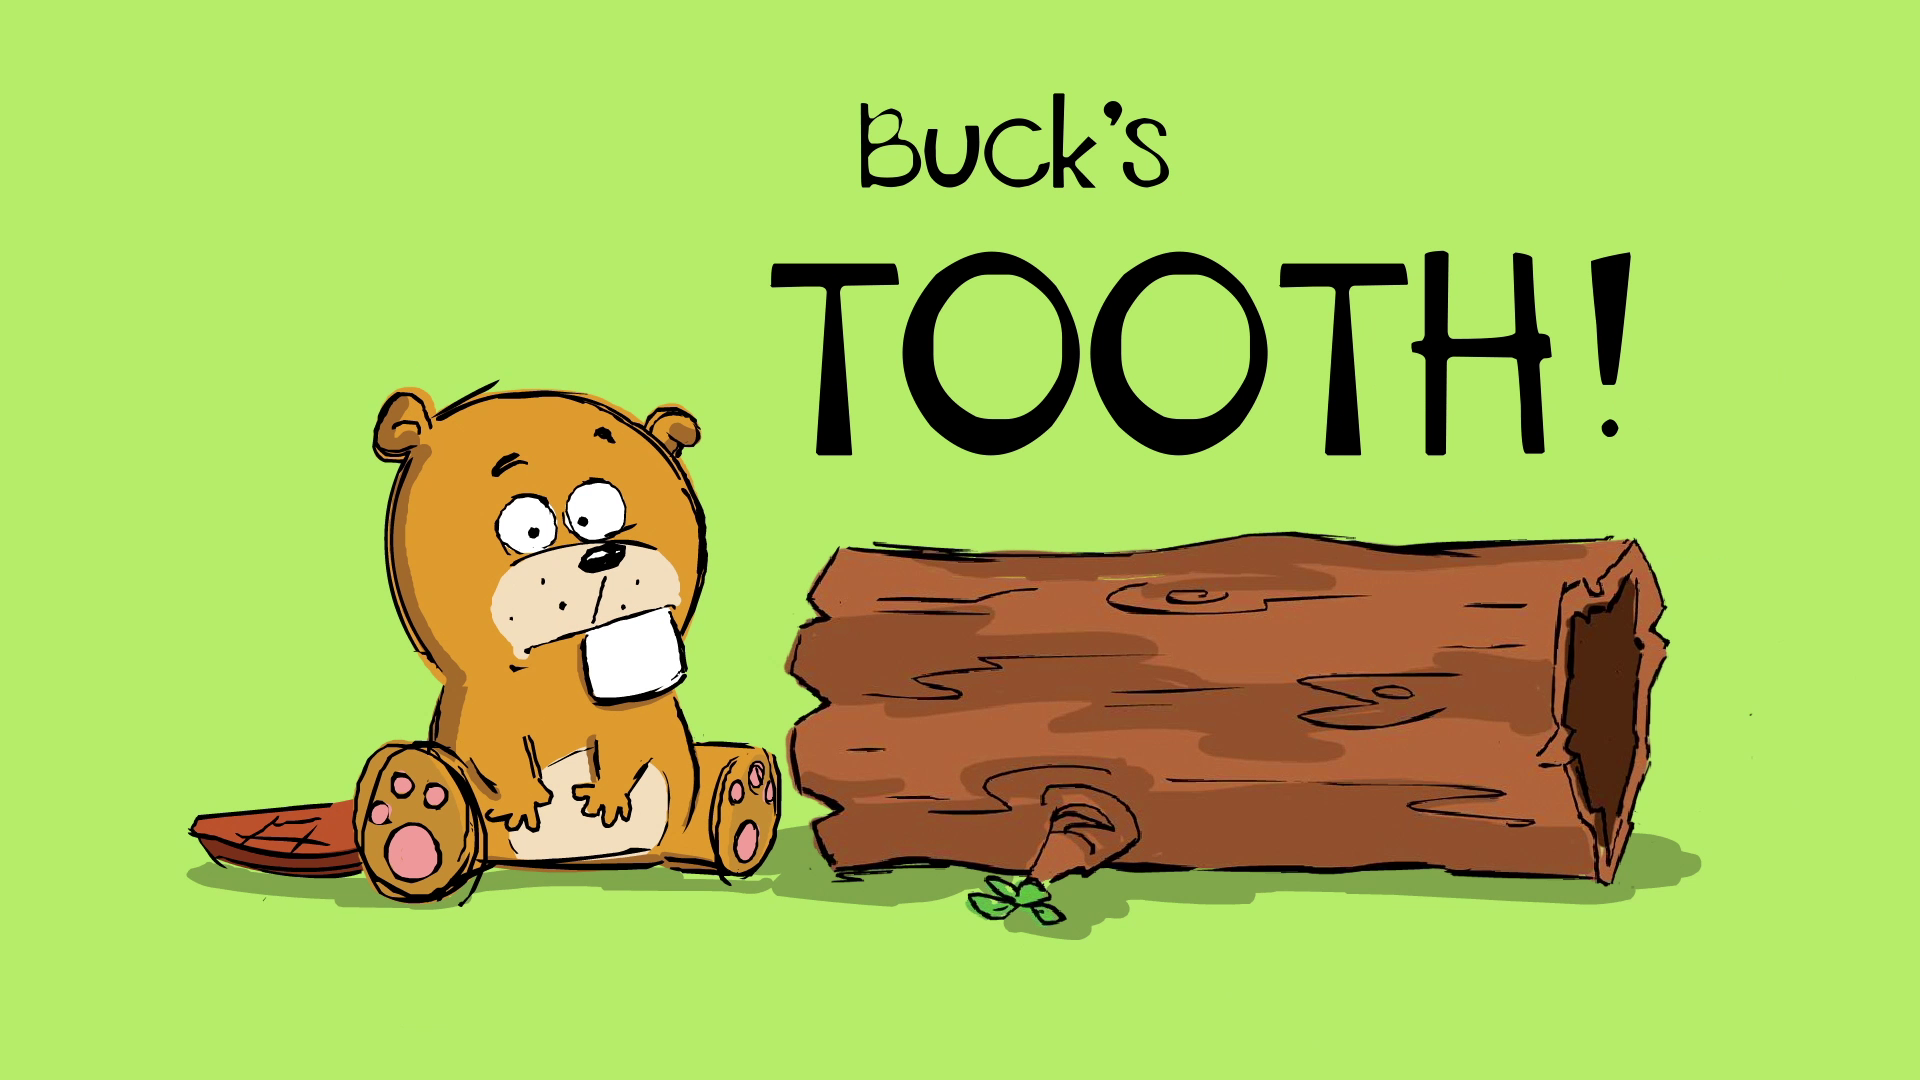 'Buck's Tooth' by Diane Kredensor